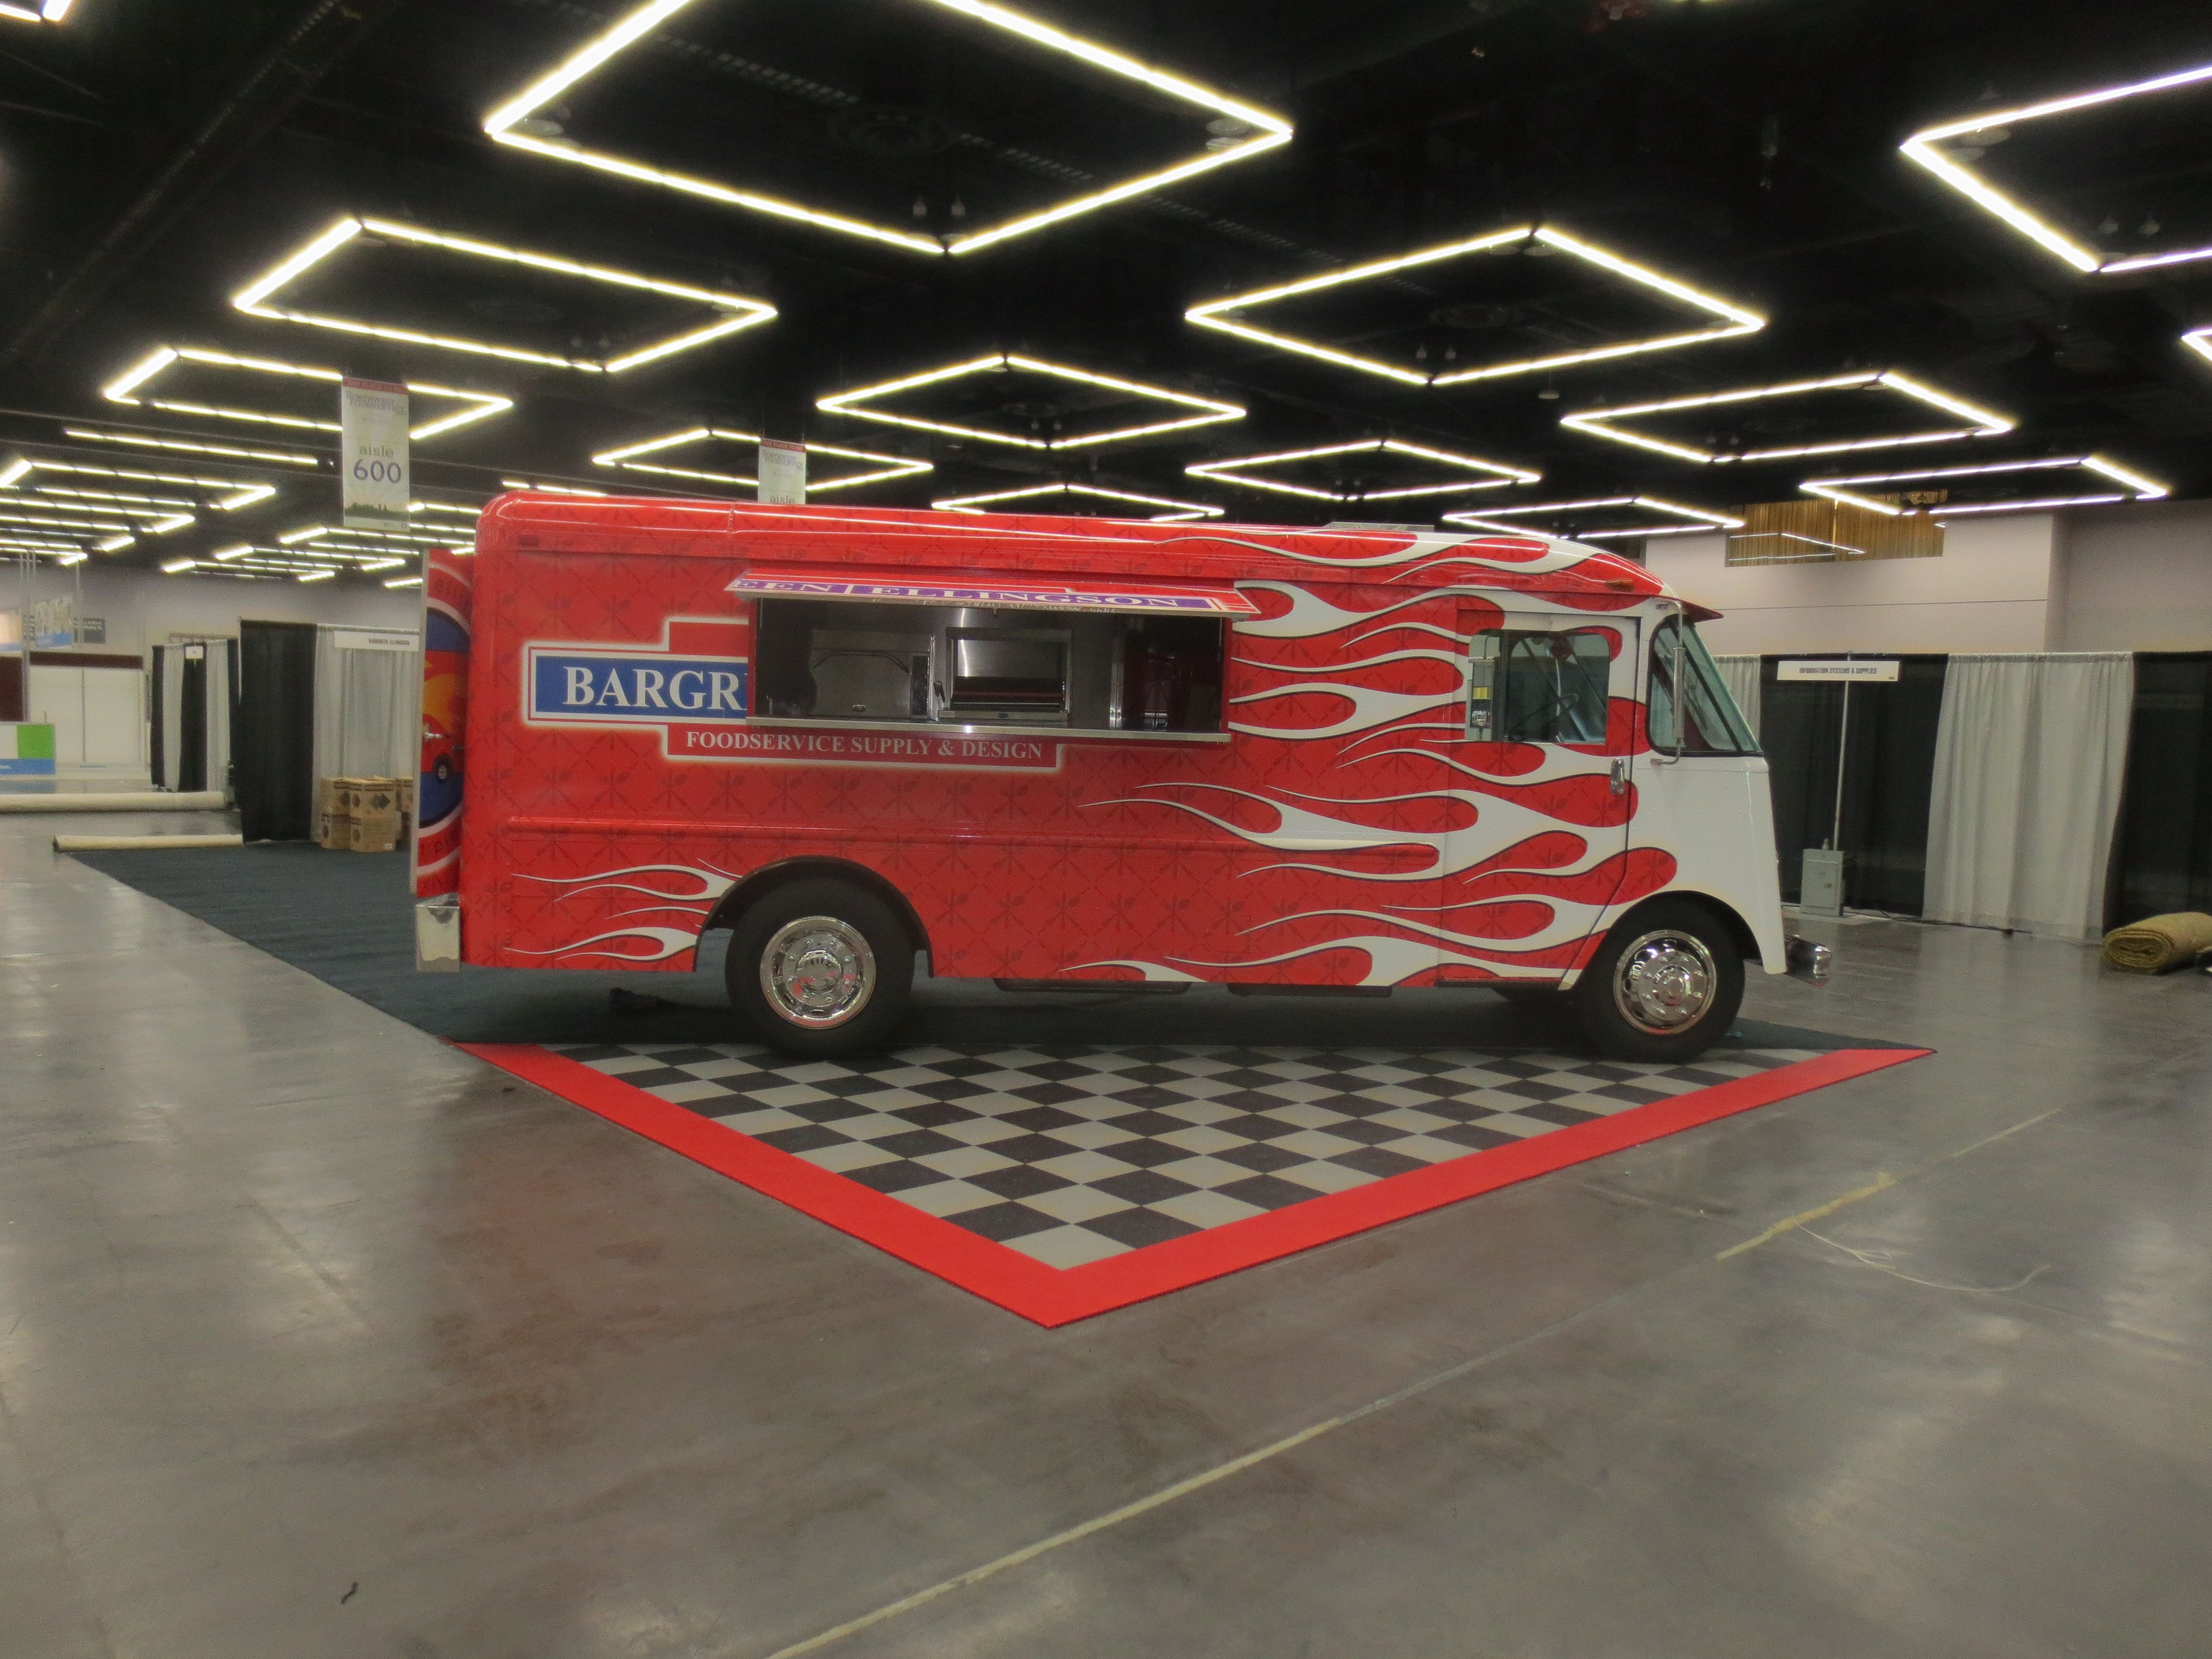 25 of the best food truck designs design galleries paste - 1964 Grumman Gmc Aluminum Step Van Food Truck With Slide Out Pass Shelf And Flamed Exterior Built By Food Truck Fabricator Blackrock And Designer And